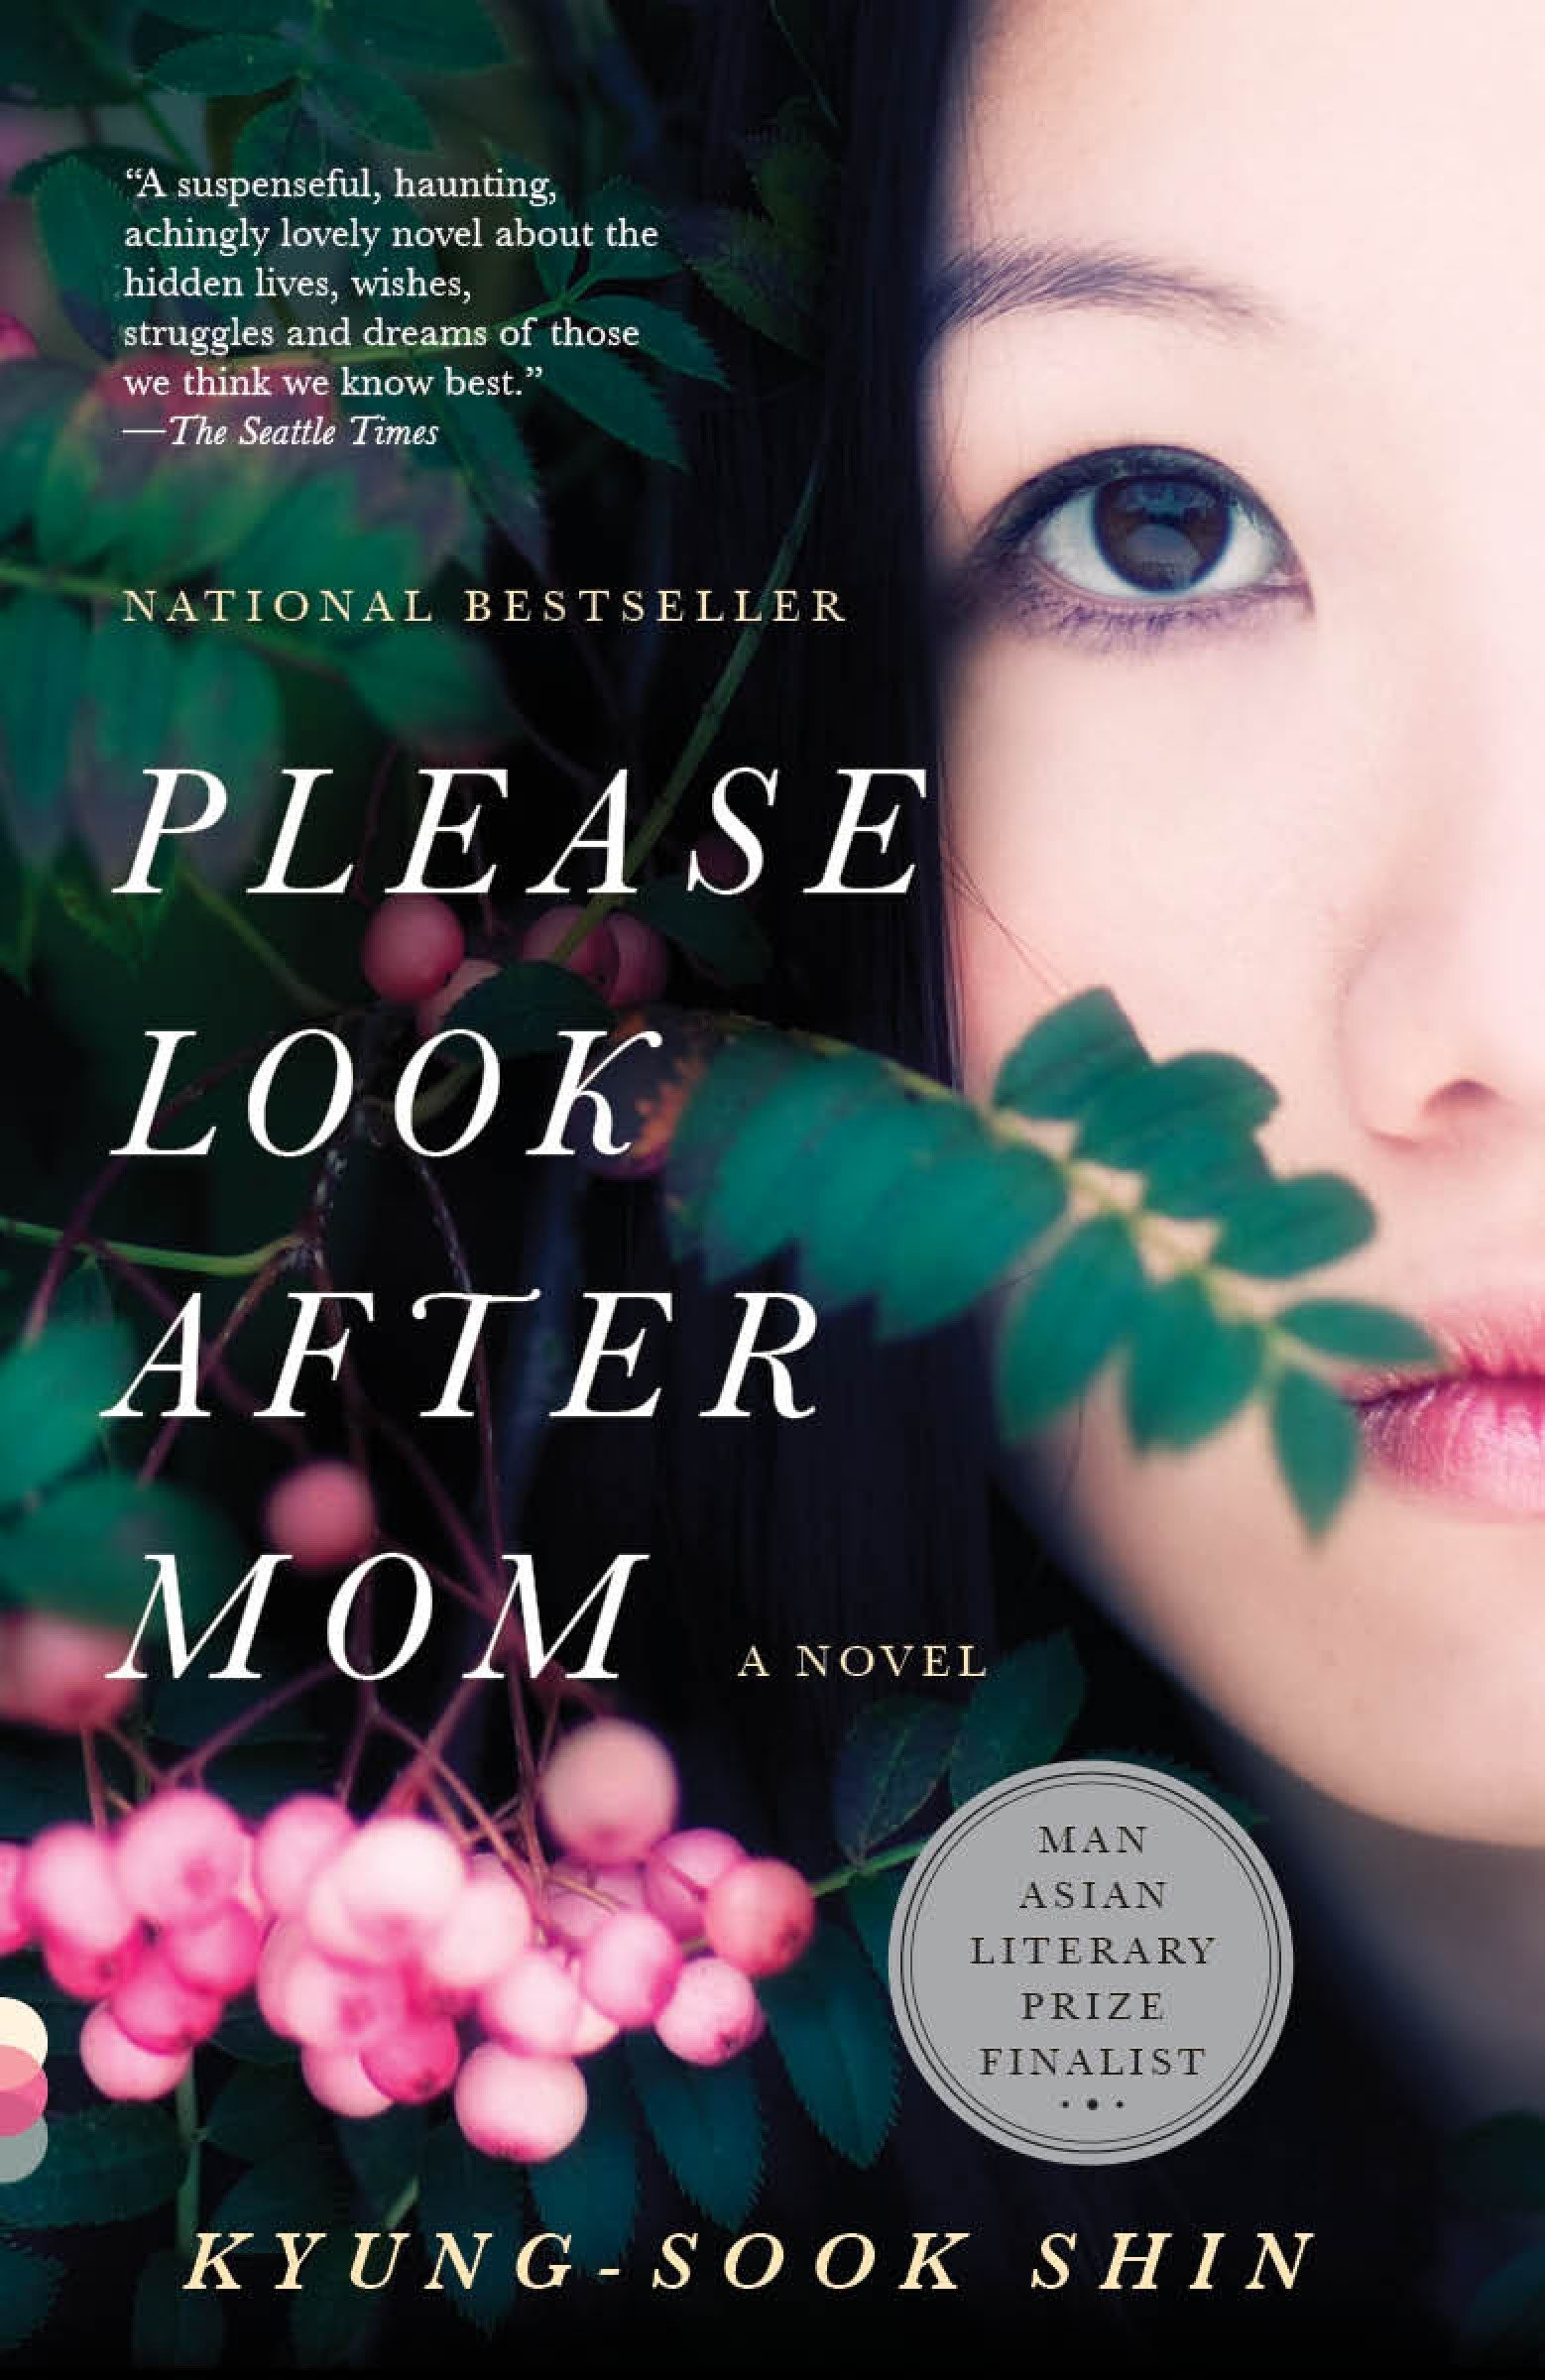 korean literature please look after mom novel cover